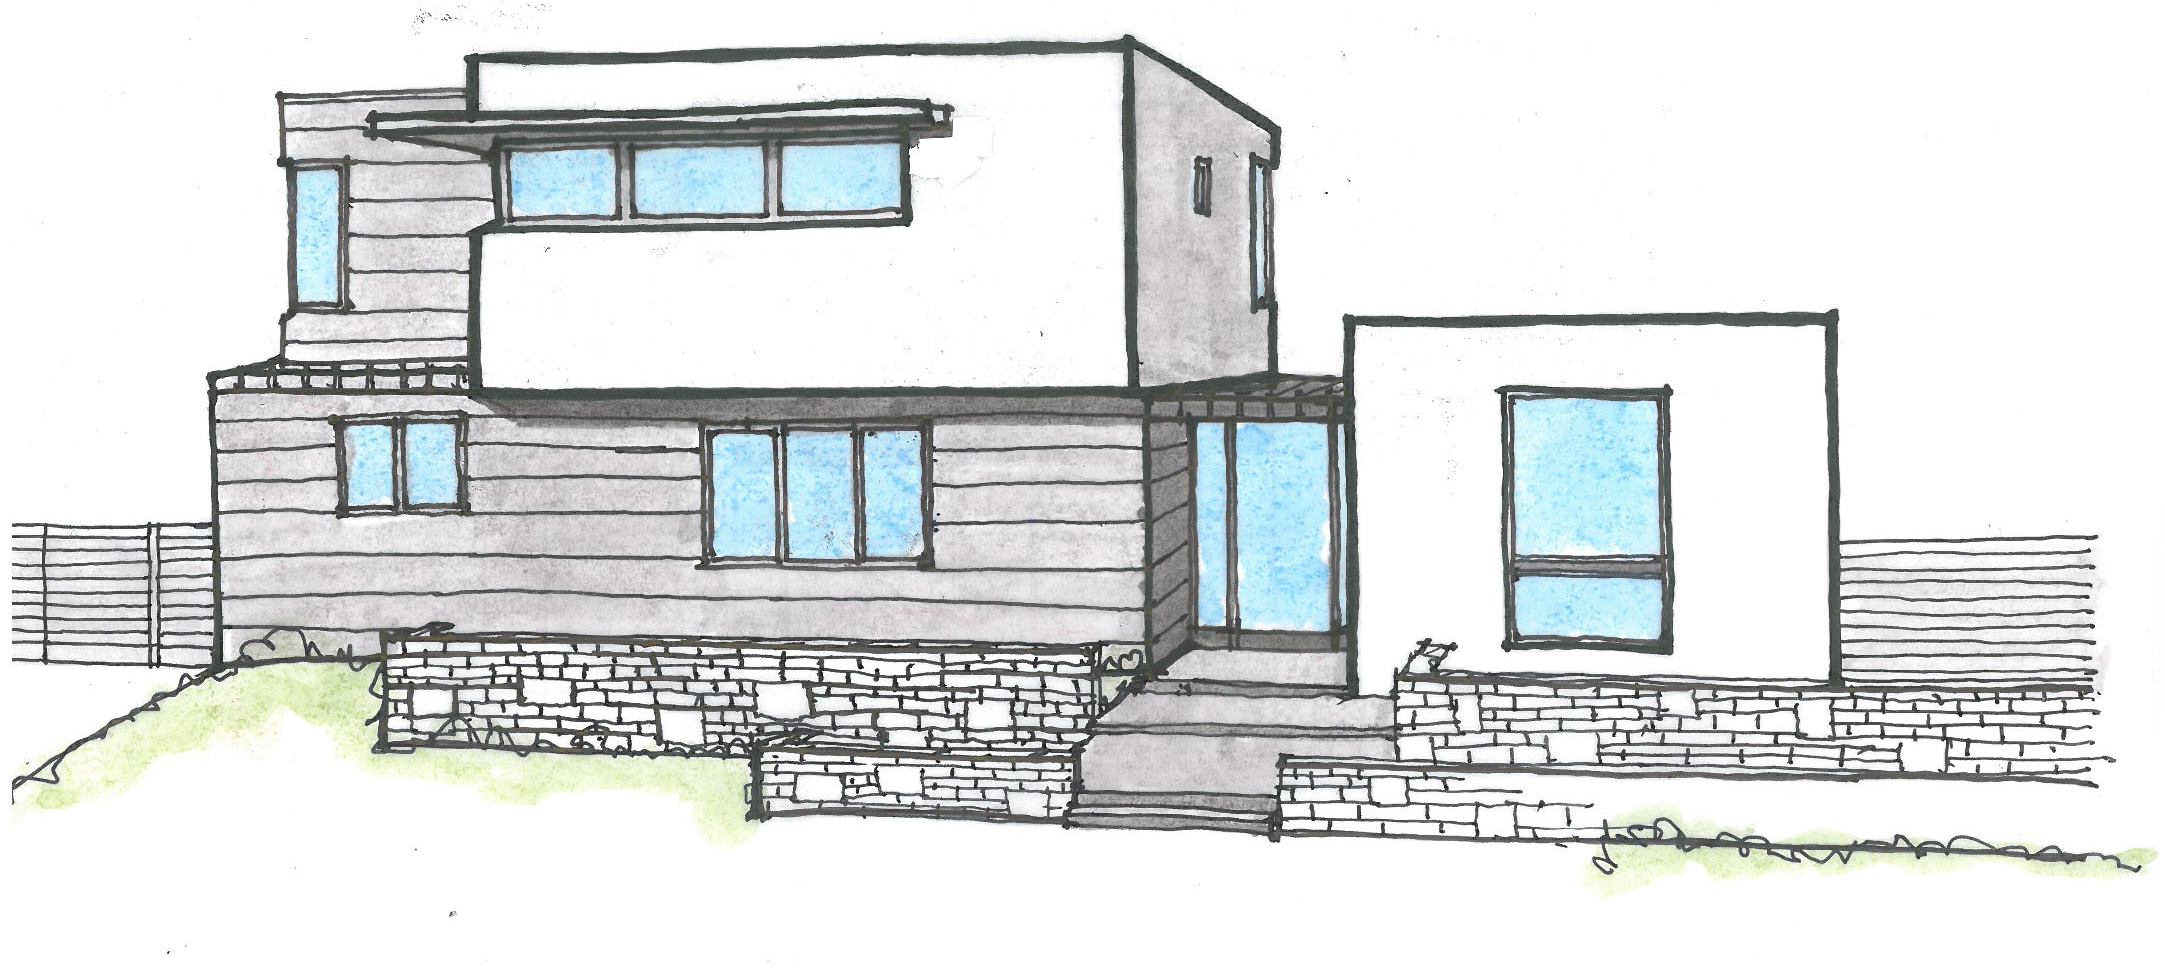 House architecture drawing at free for for Architectural drawings for houses